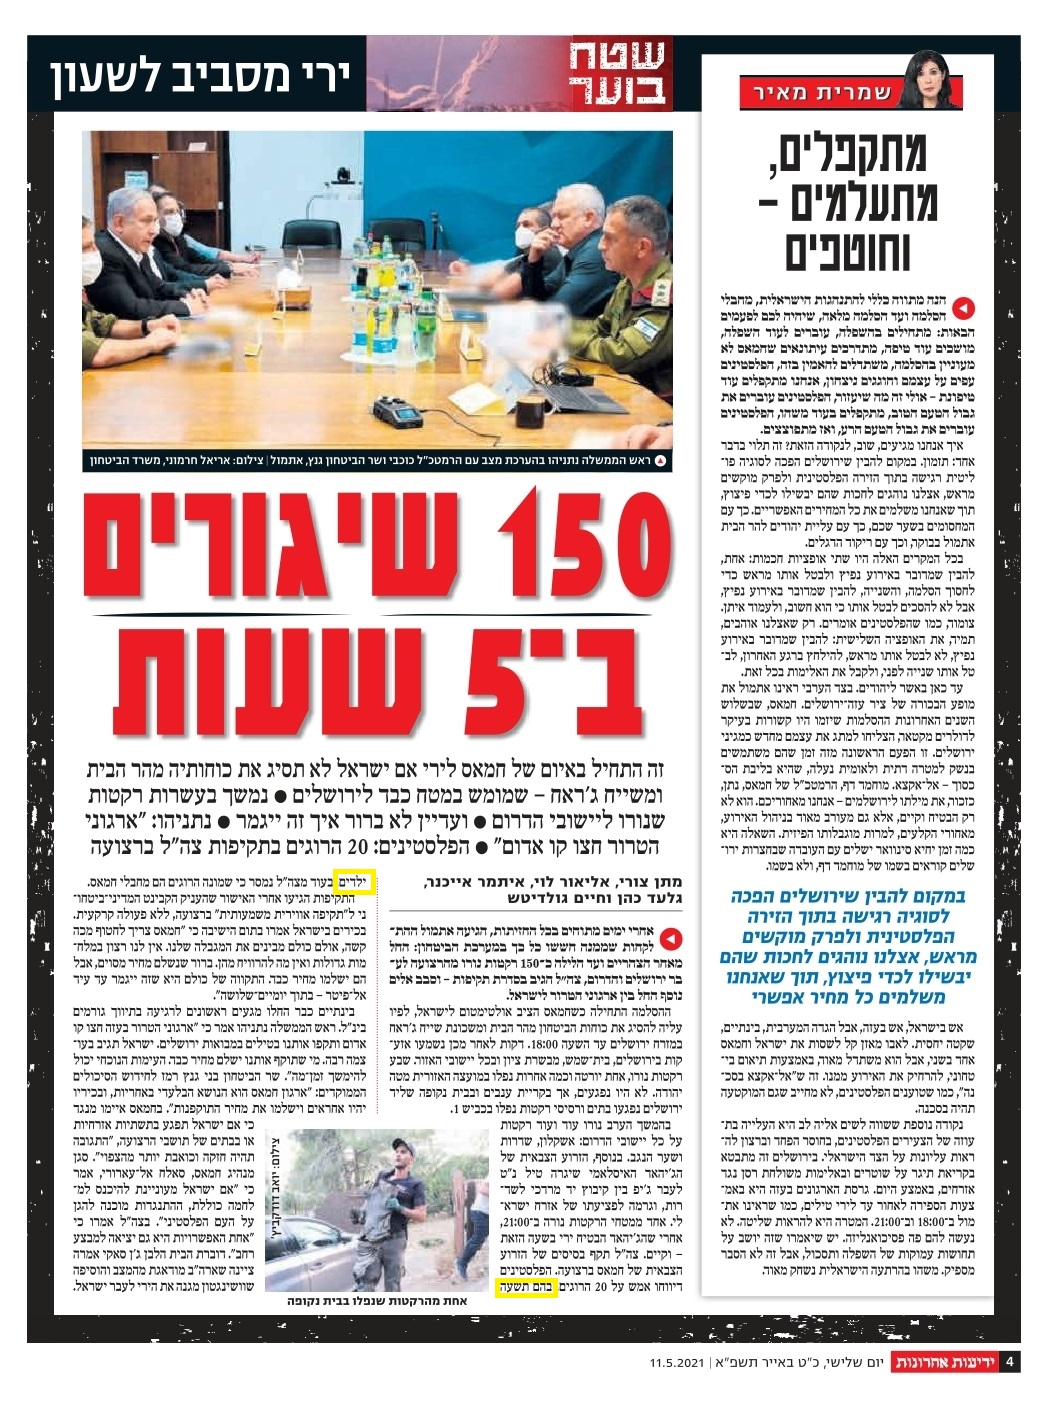 Yedioth Ahronoth's article on the nine children killed in Gaza, under the headline: '150 launches in five hours.' The subhead mentions the 20 Palestinians killed in attacks.